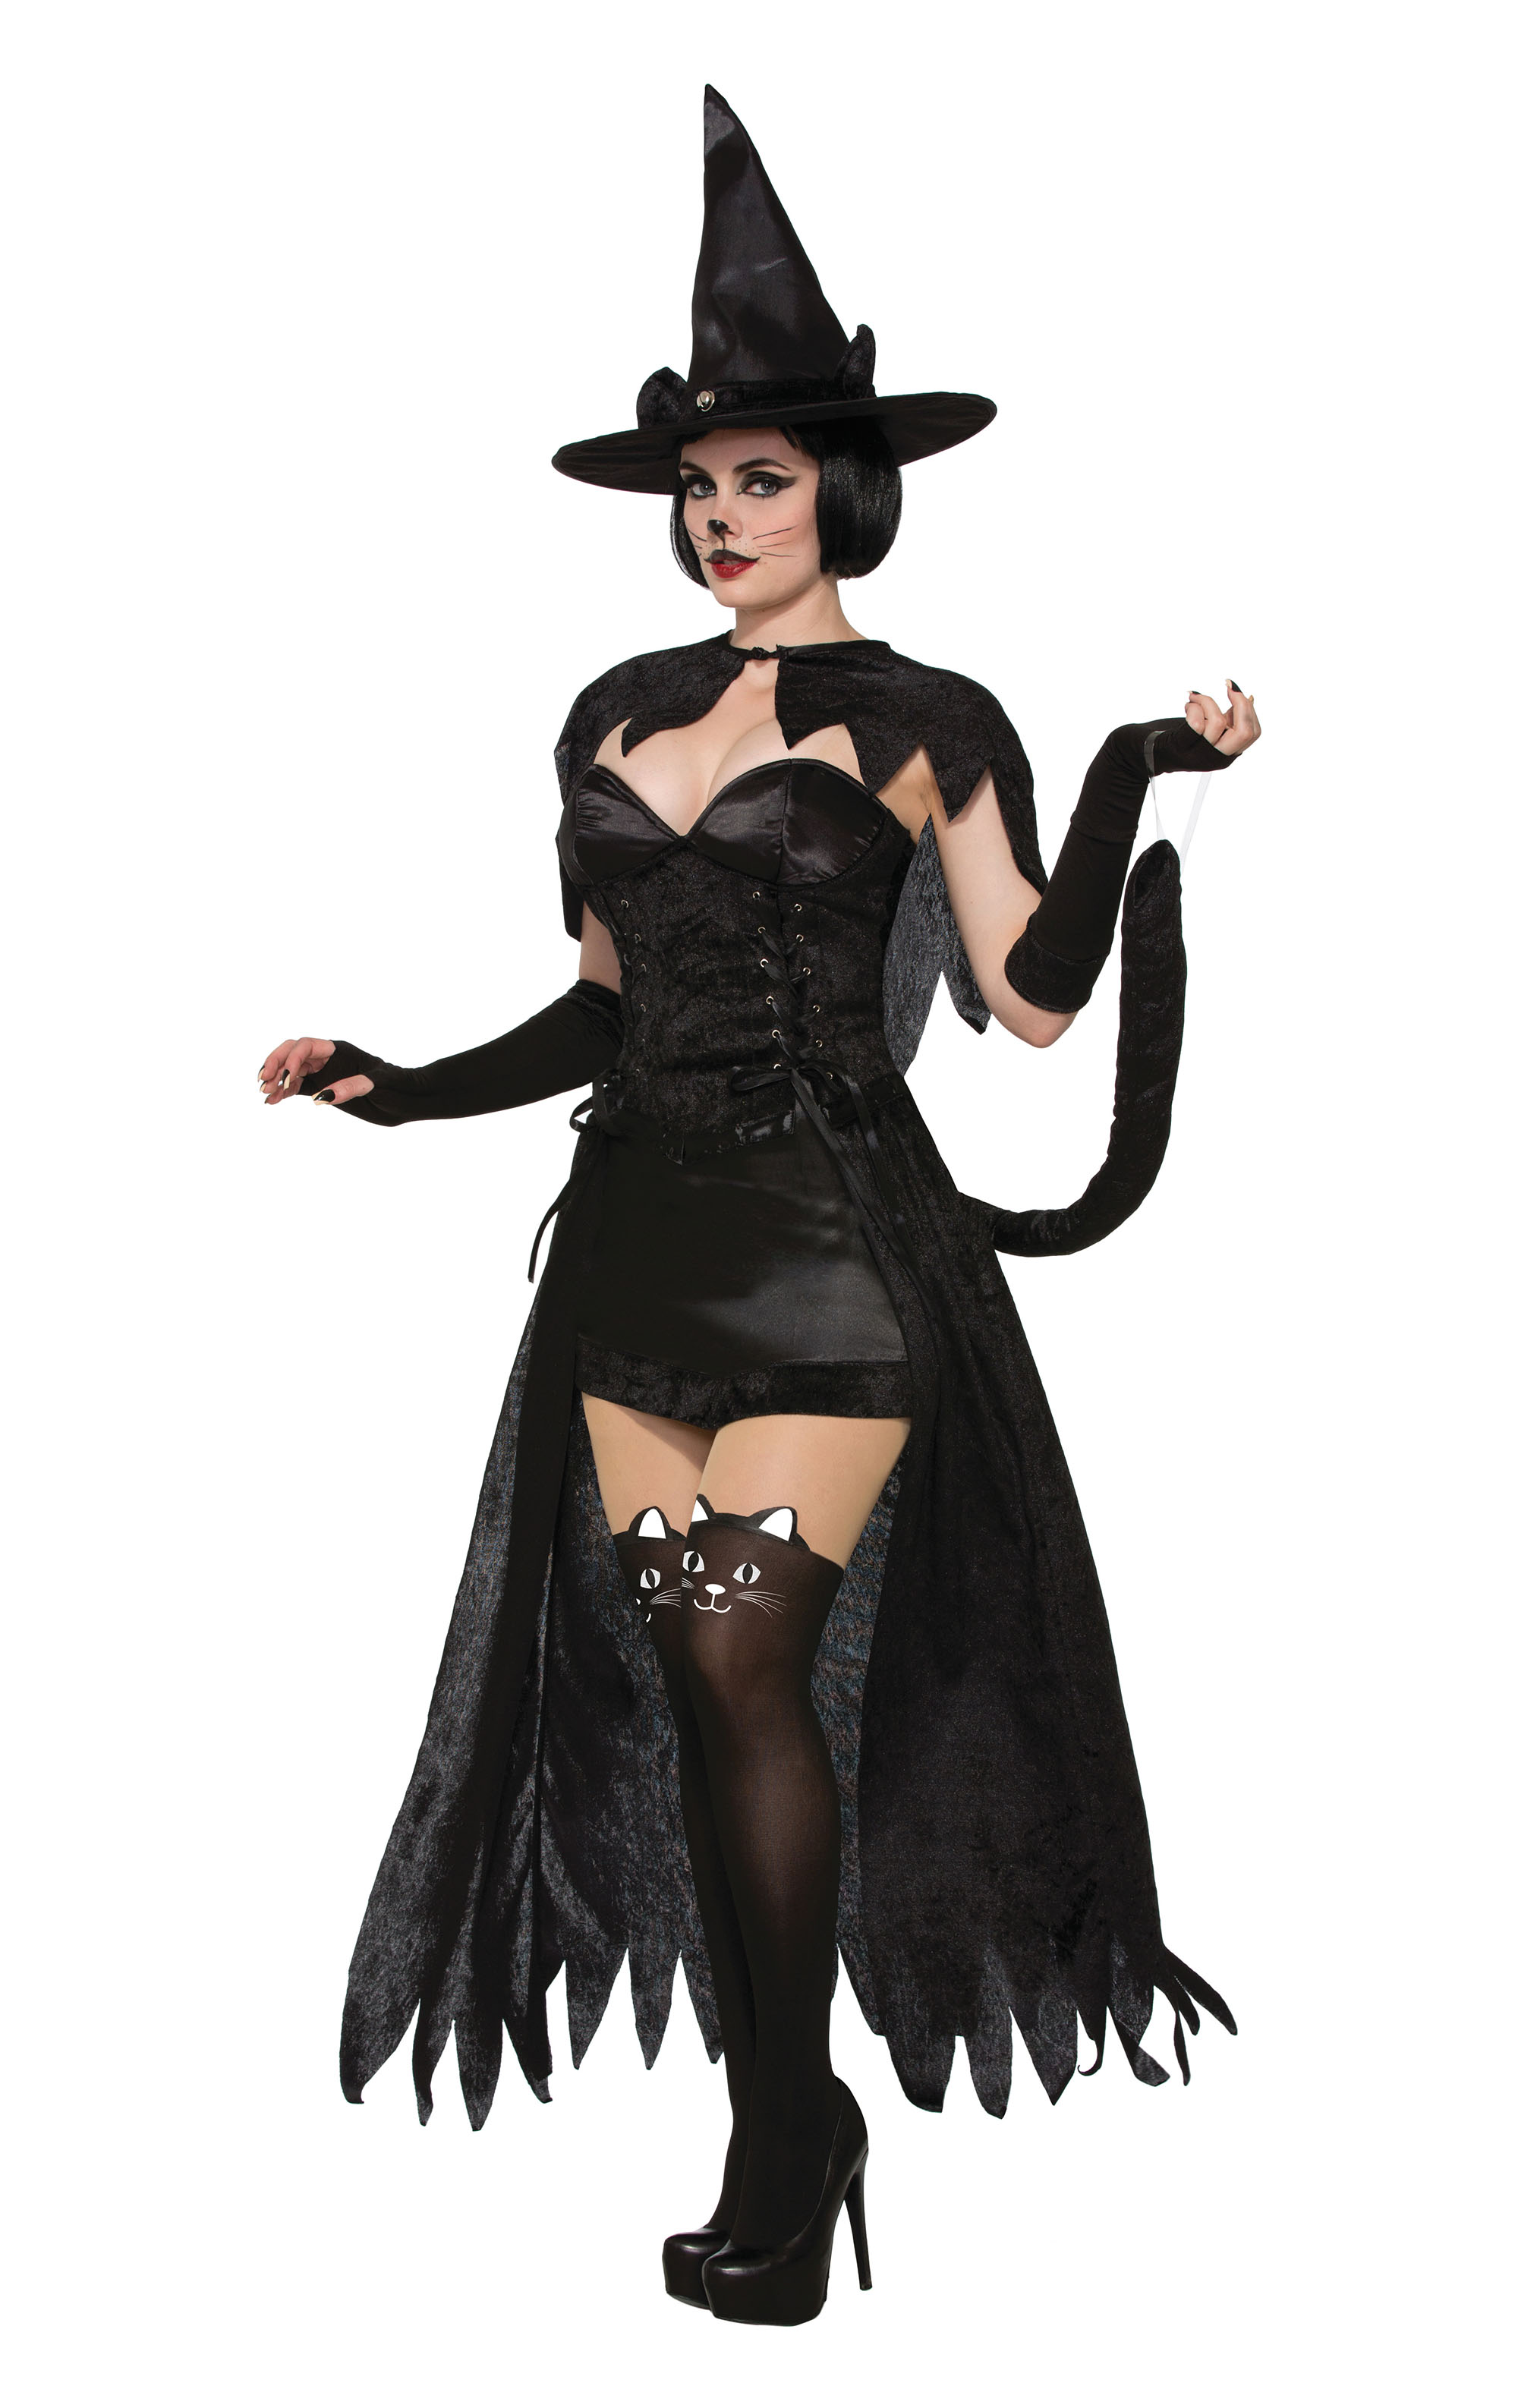 Black Cat Witch Costume Halloween Fancy Dress Costume Womens Adult UK 10-14